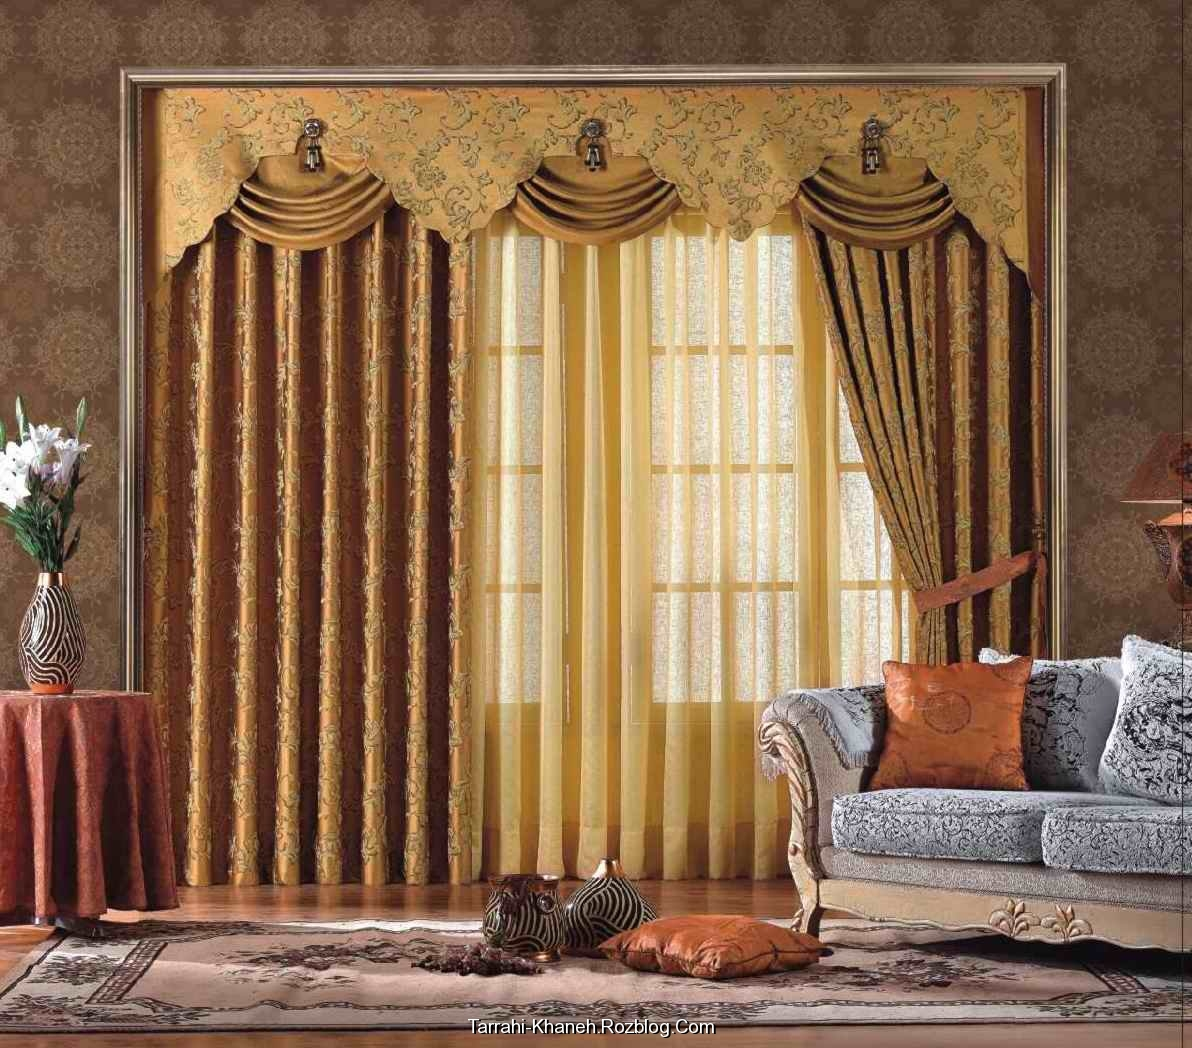 http://rozup.ir/up/tarrahi-khaneh/Pictures/Curtain-Designs/Curtain-Designs-Ideas-Image/beautiful-decorating-interior-window-curtain-designs-ideas.jpg